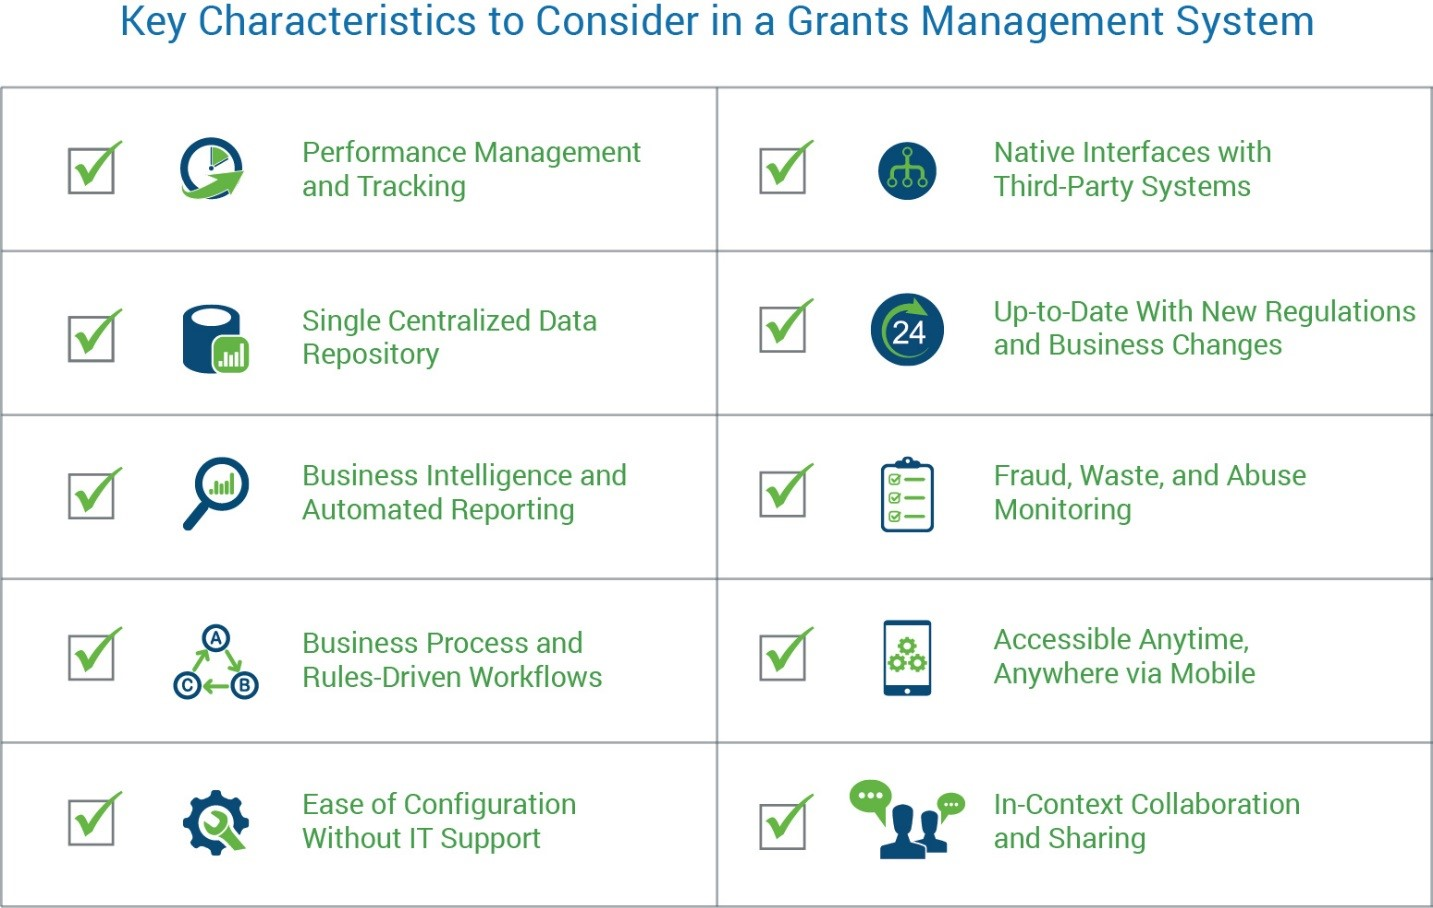 Technology Management Image: Welcome To The Future: Grants Management Systems 2020